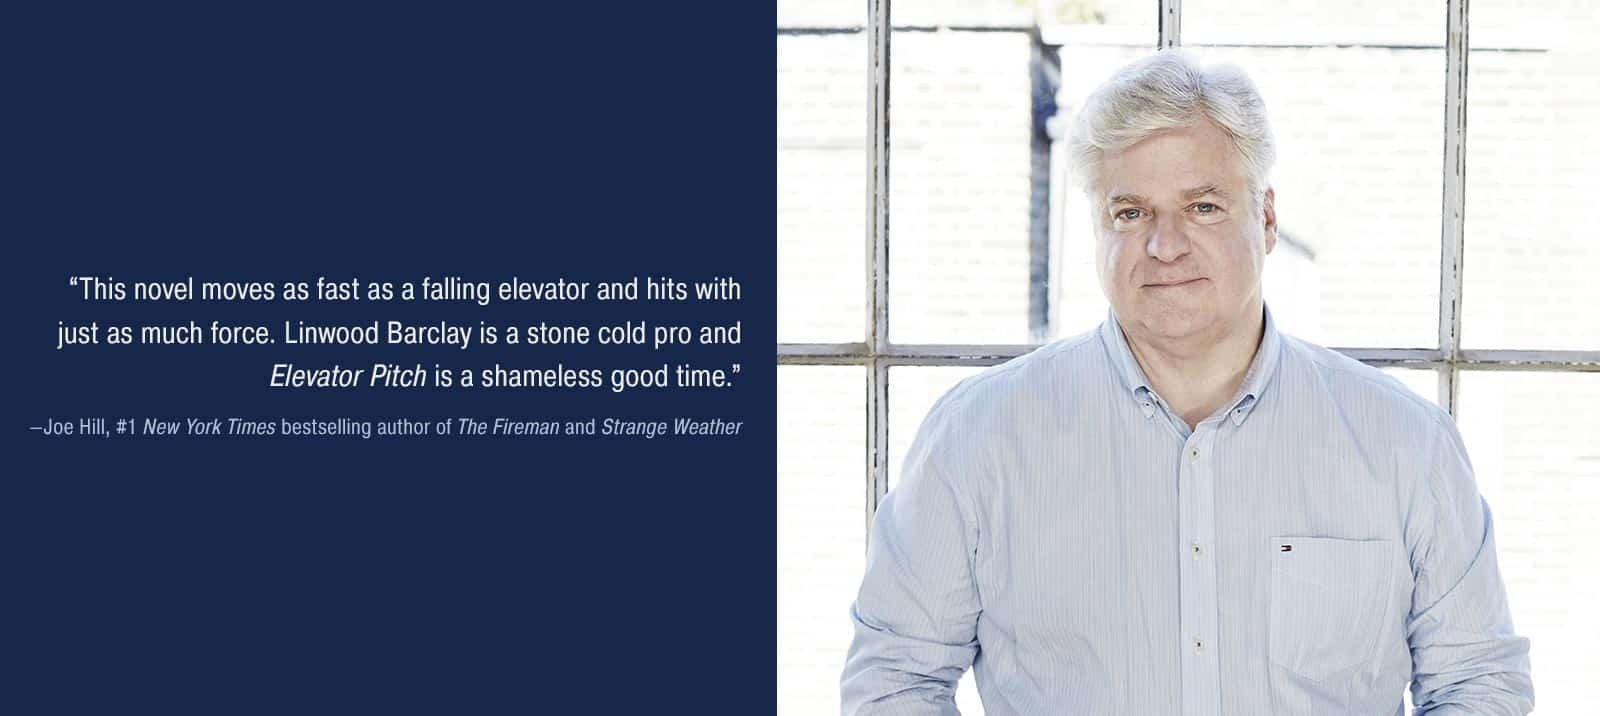 Praise for 'Elevator Pitch' by Linwood Barclay